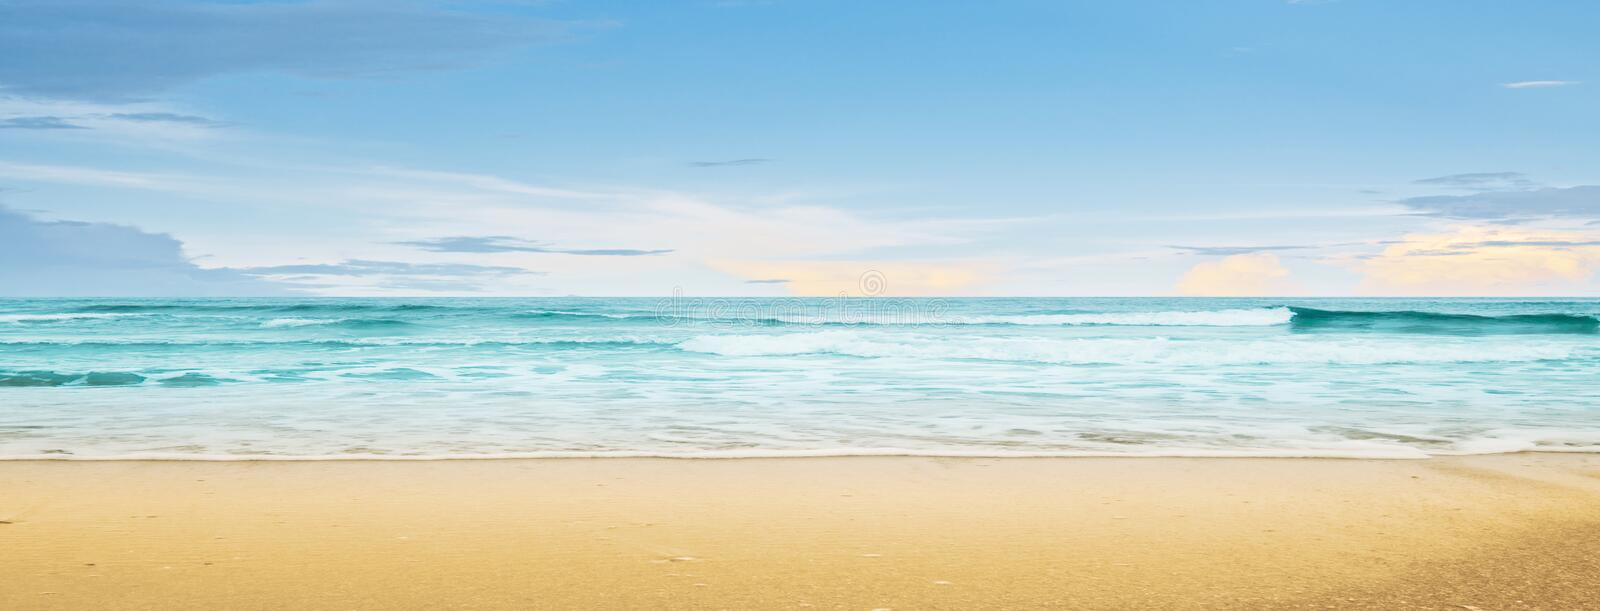 Download Tropical beach and ocean stock image. Image of sand, horizontal - 42439477